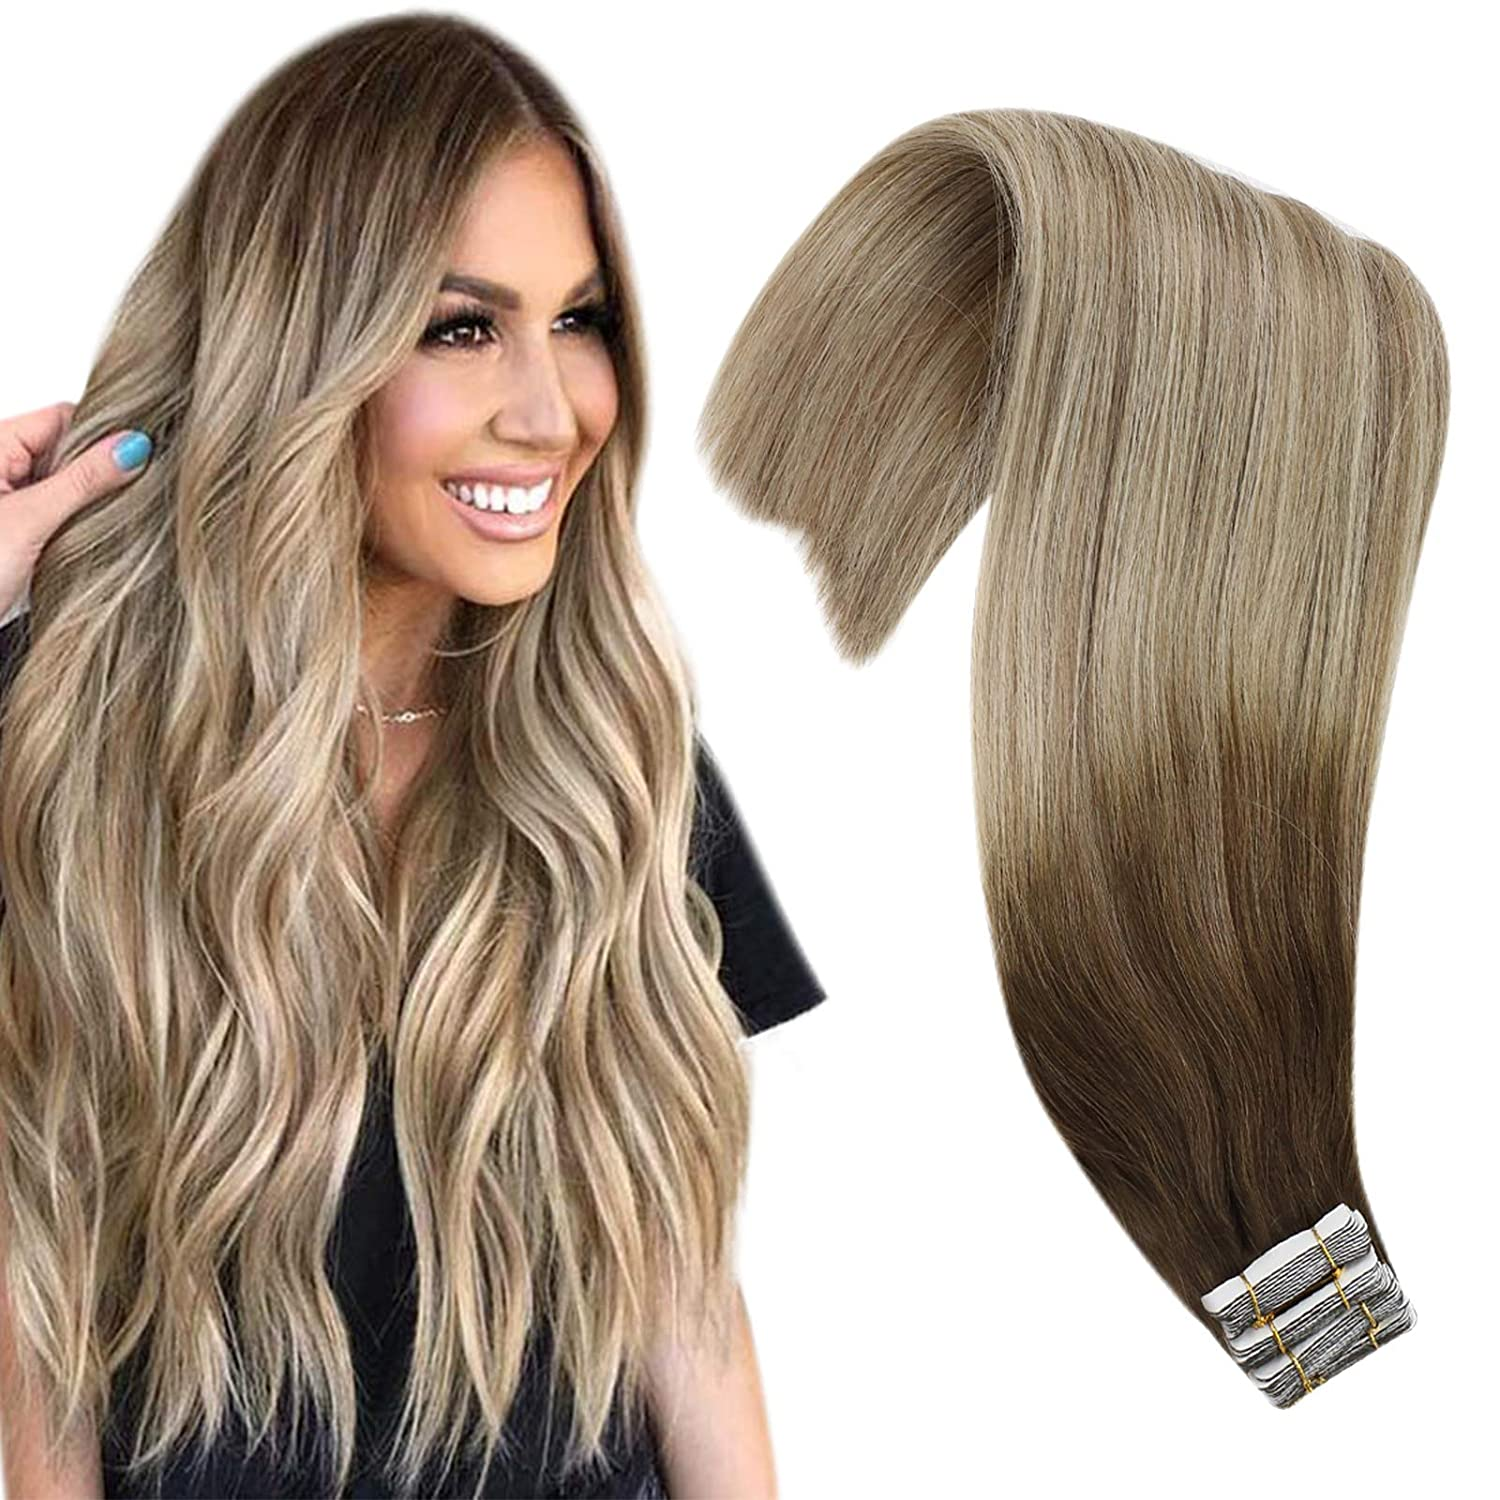 VeSunny Balayage Hair Extensions New life Tape Max 85% OFF in Platinum Ombre Bl Browm